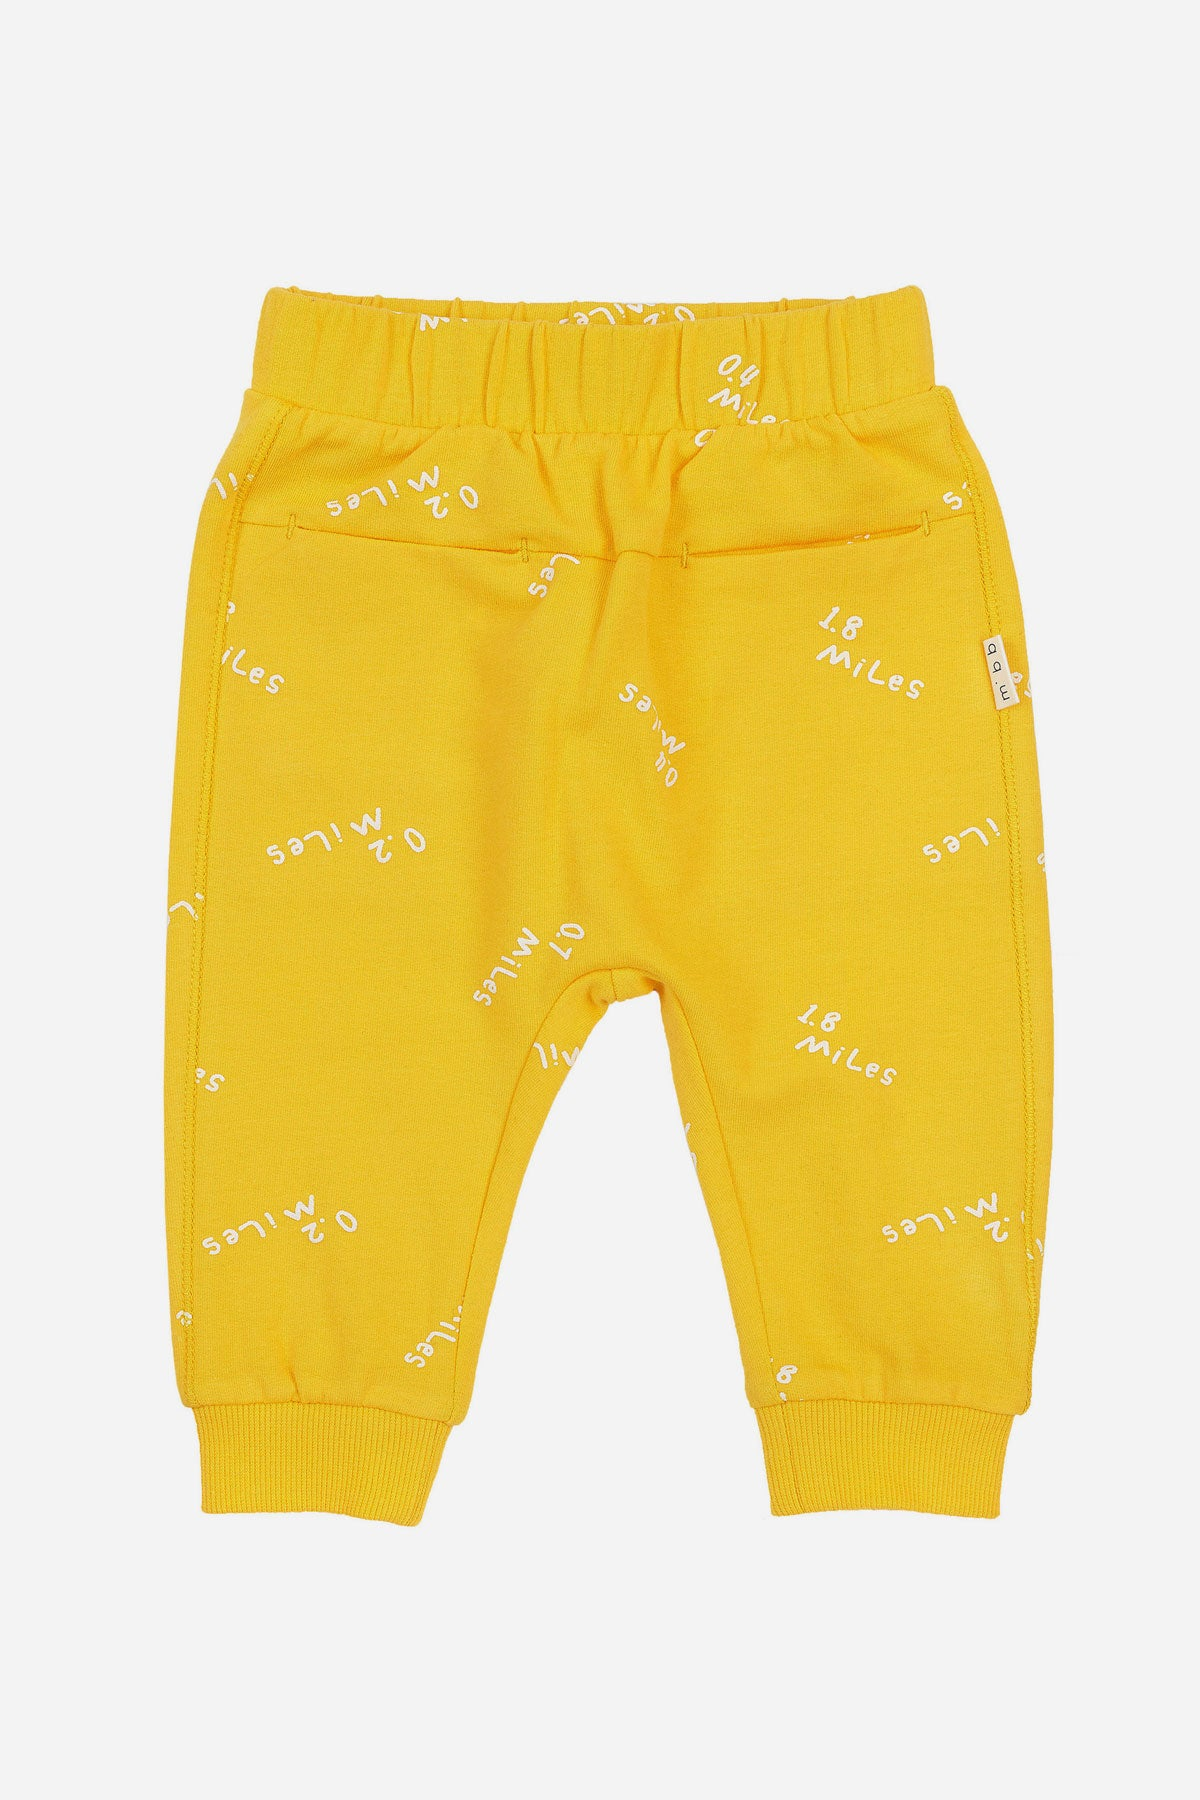 Miles Baby To Go Jogger Pant